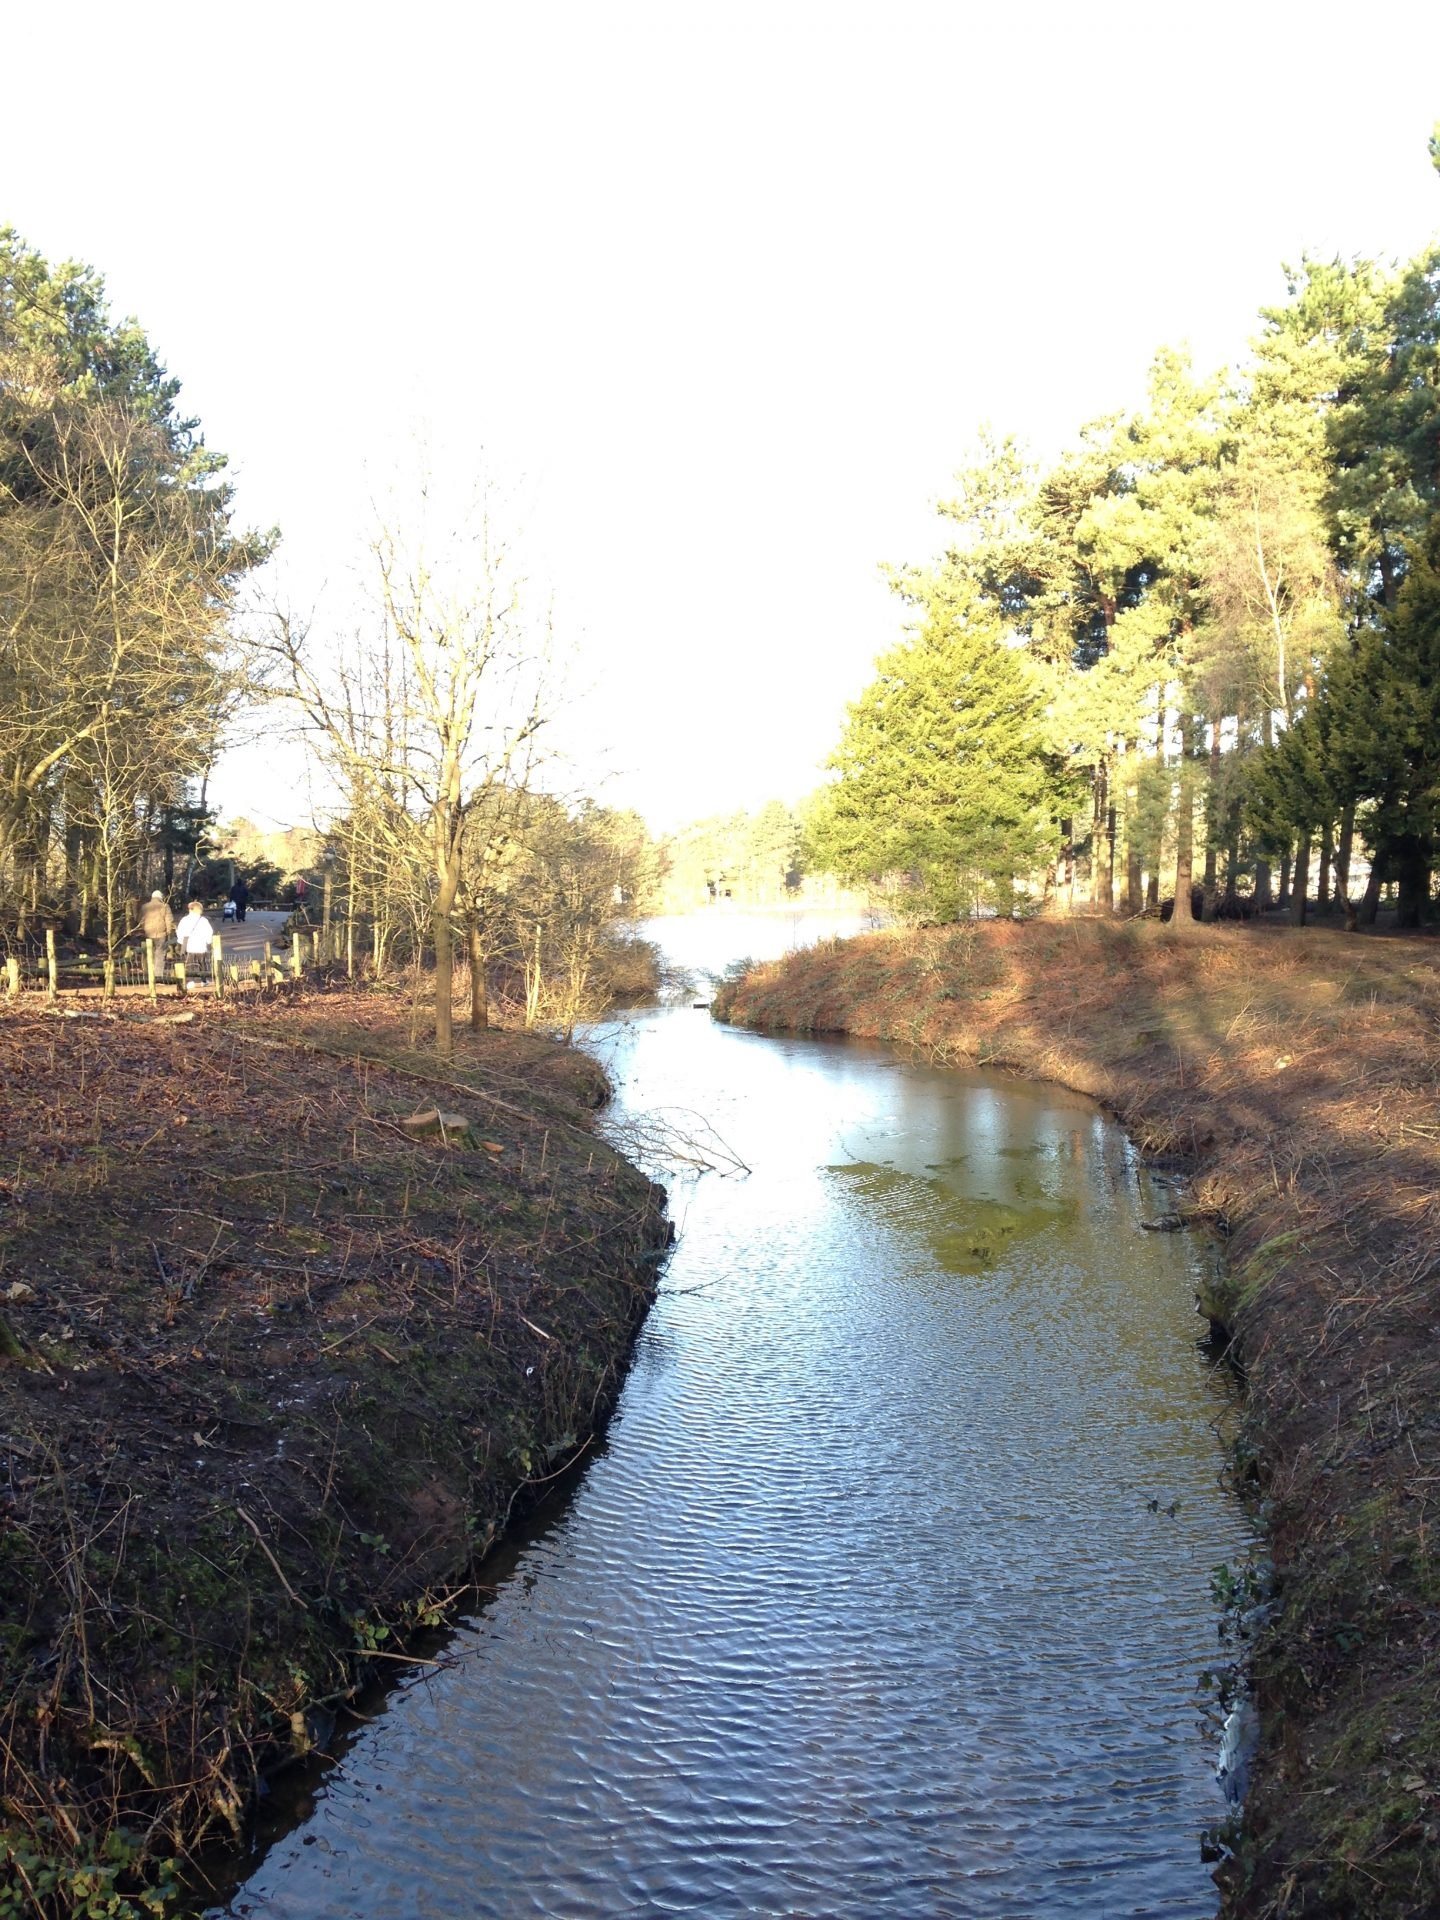 The winding river and woodland walks at Center Parcs